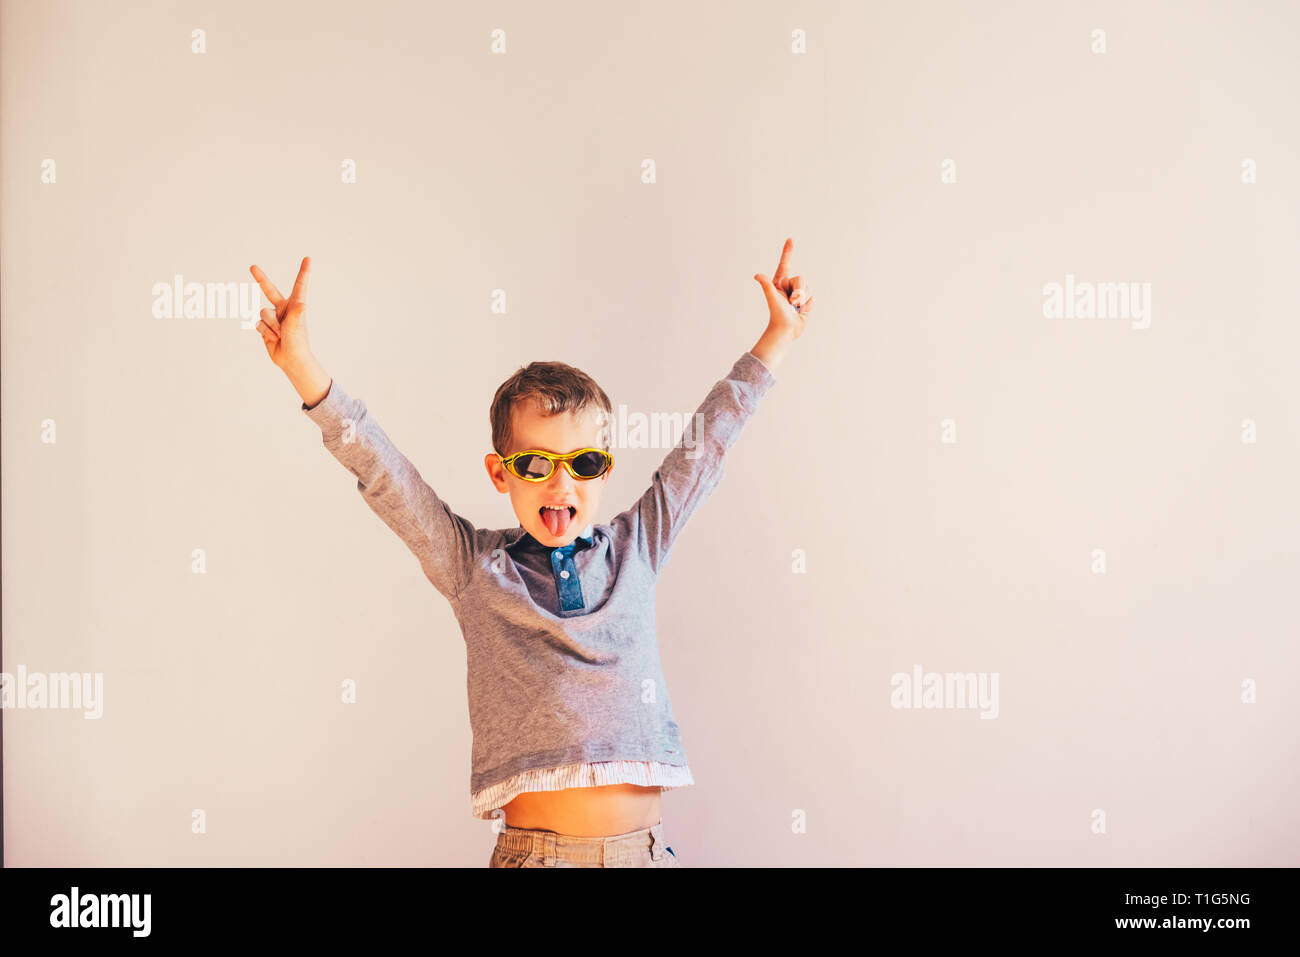 Child with funny sunglasses raising arms excited in victory sign. - Stock Image